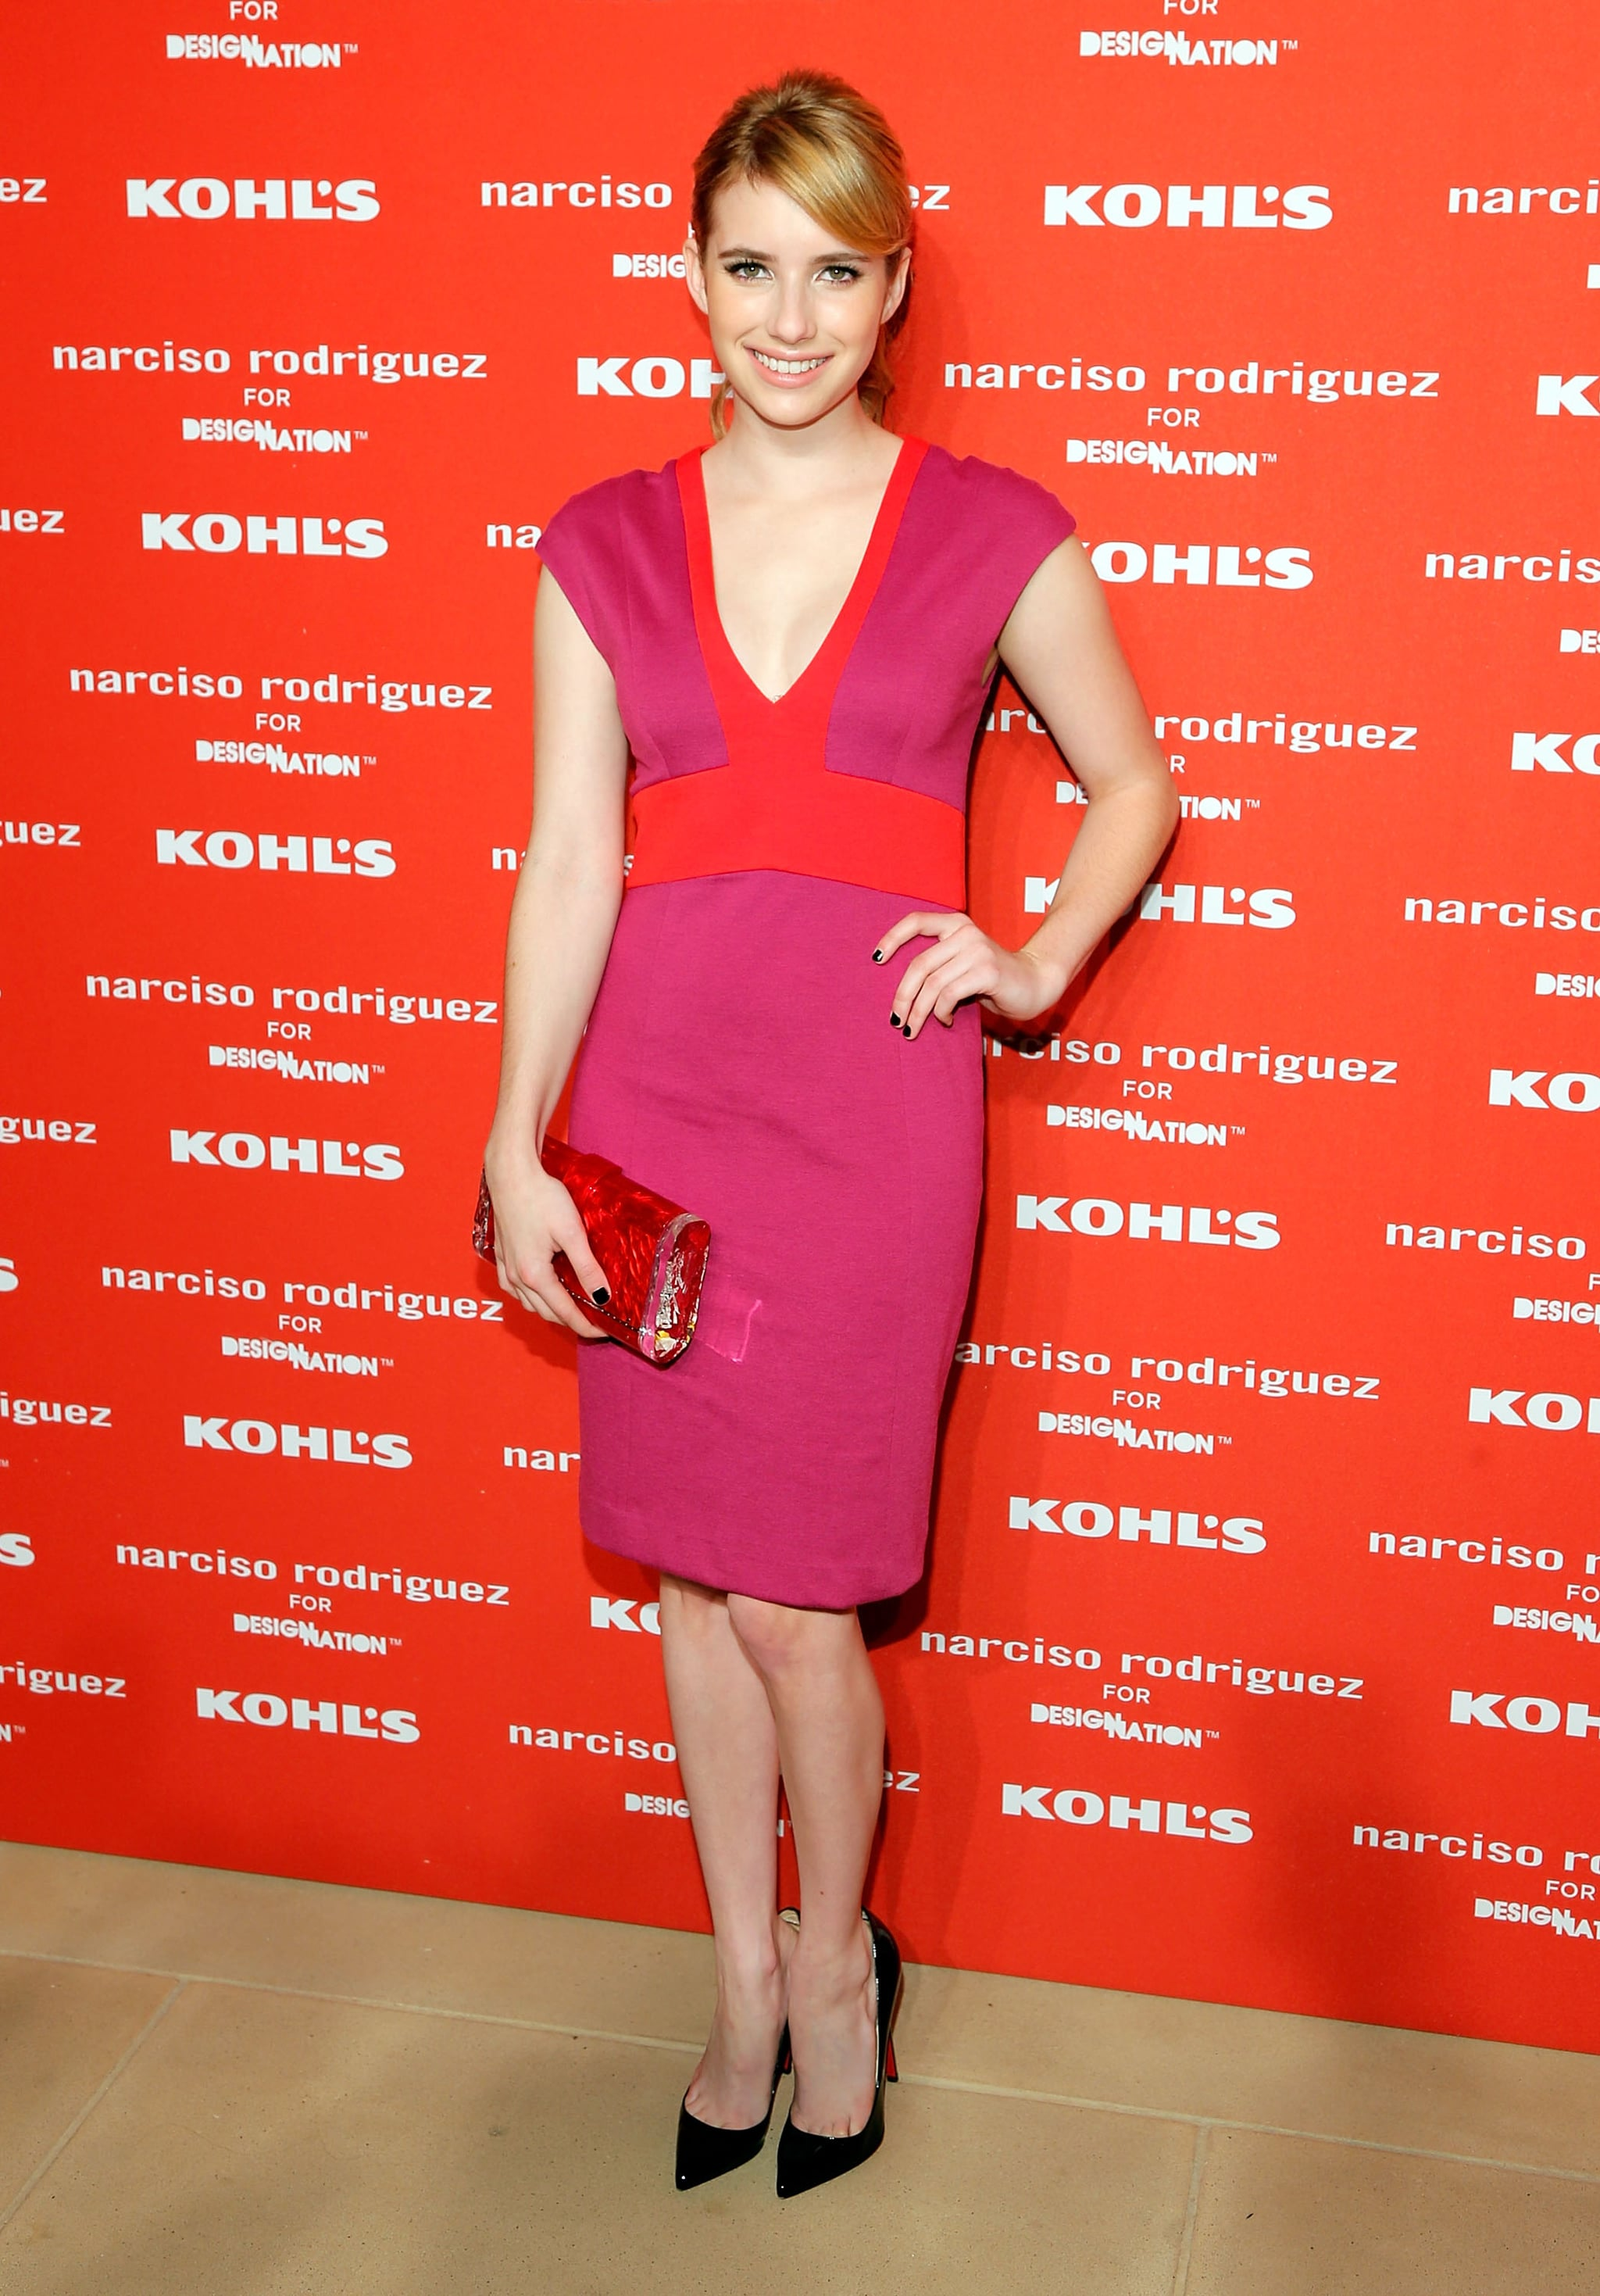 Emma attended the launch party for Narciso Rodriguez's Kohl's collection in October 2012 wearing a colorblock dress by the designer.